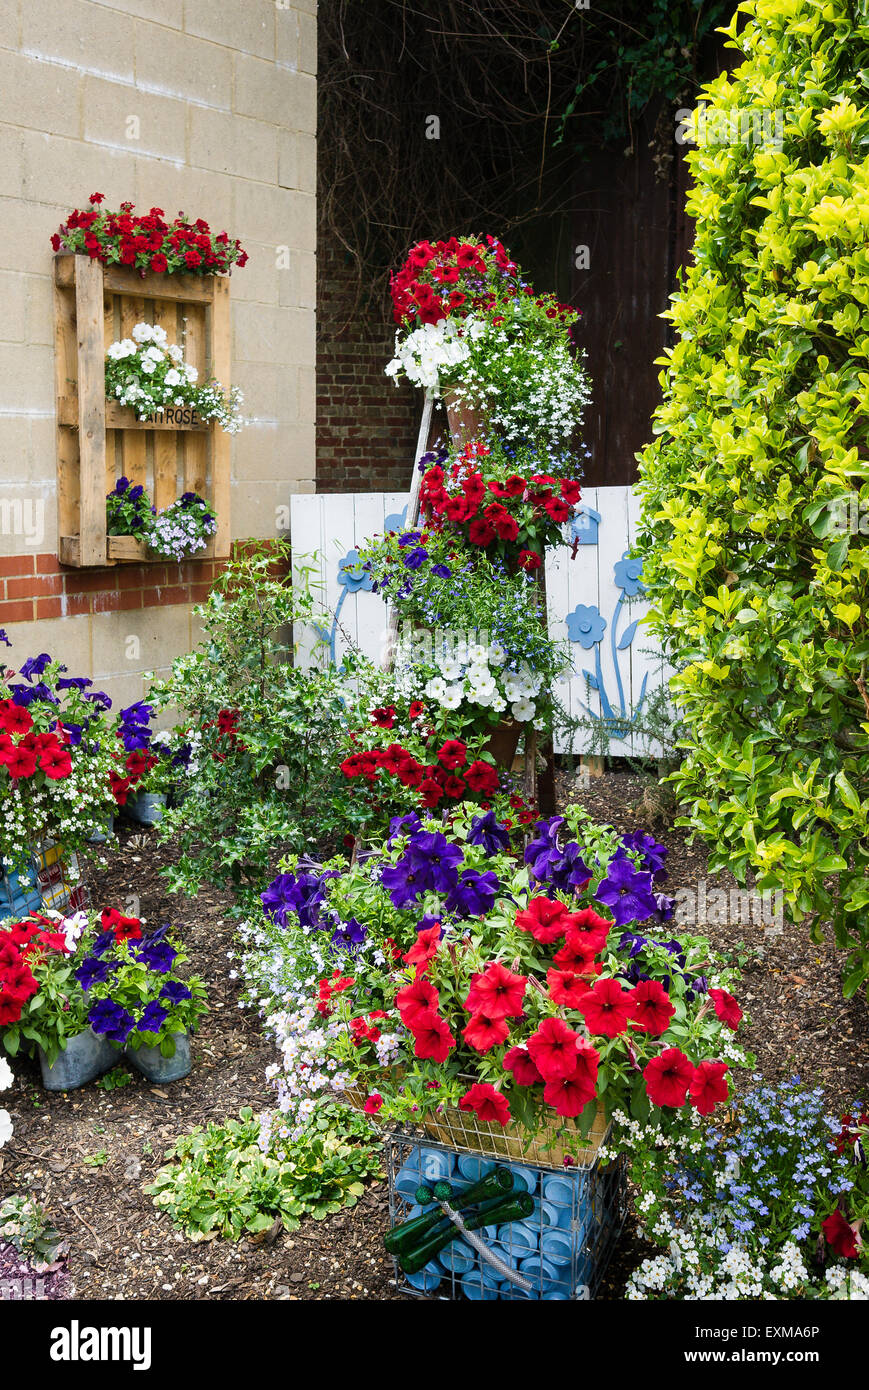 Small urban garden decorated by Waitrose using recycled material and bedding plantsMaking do - Stock Image